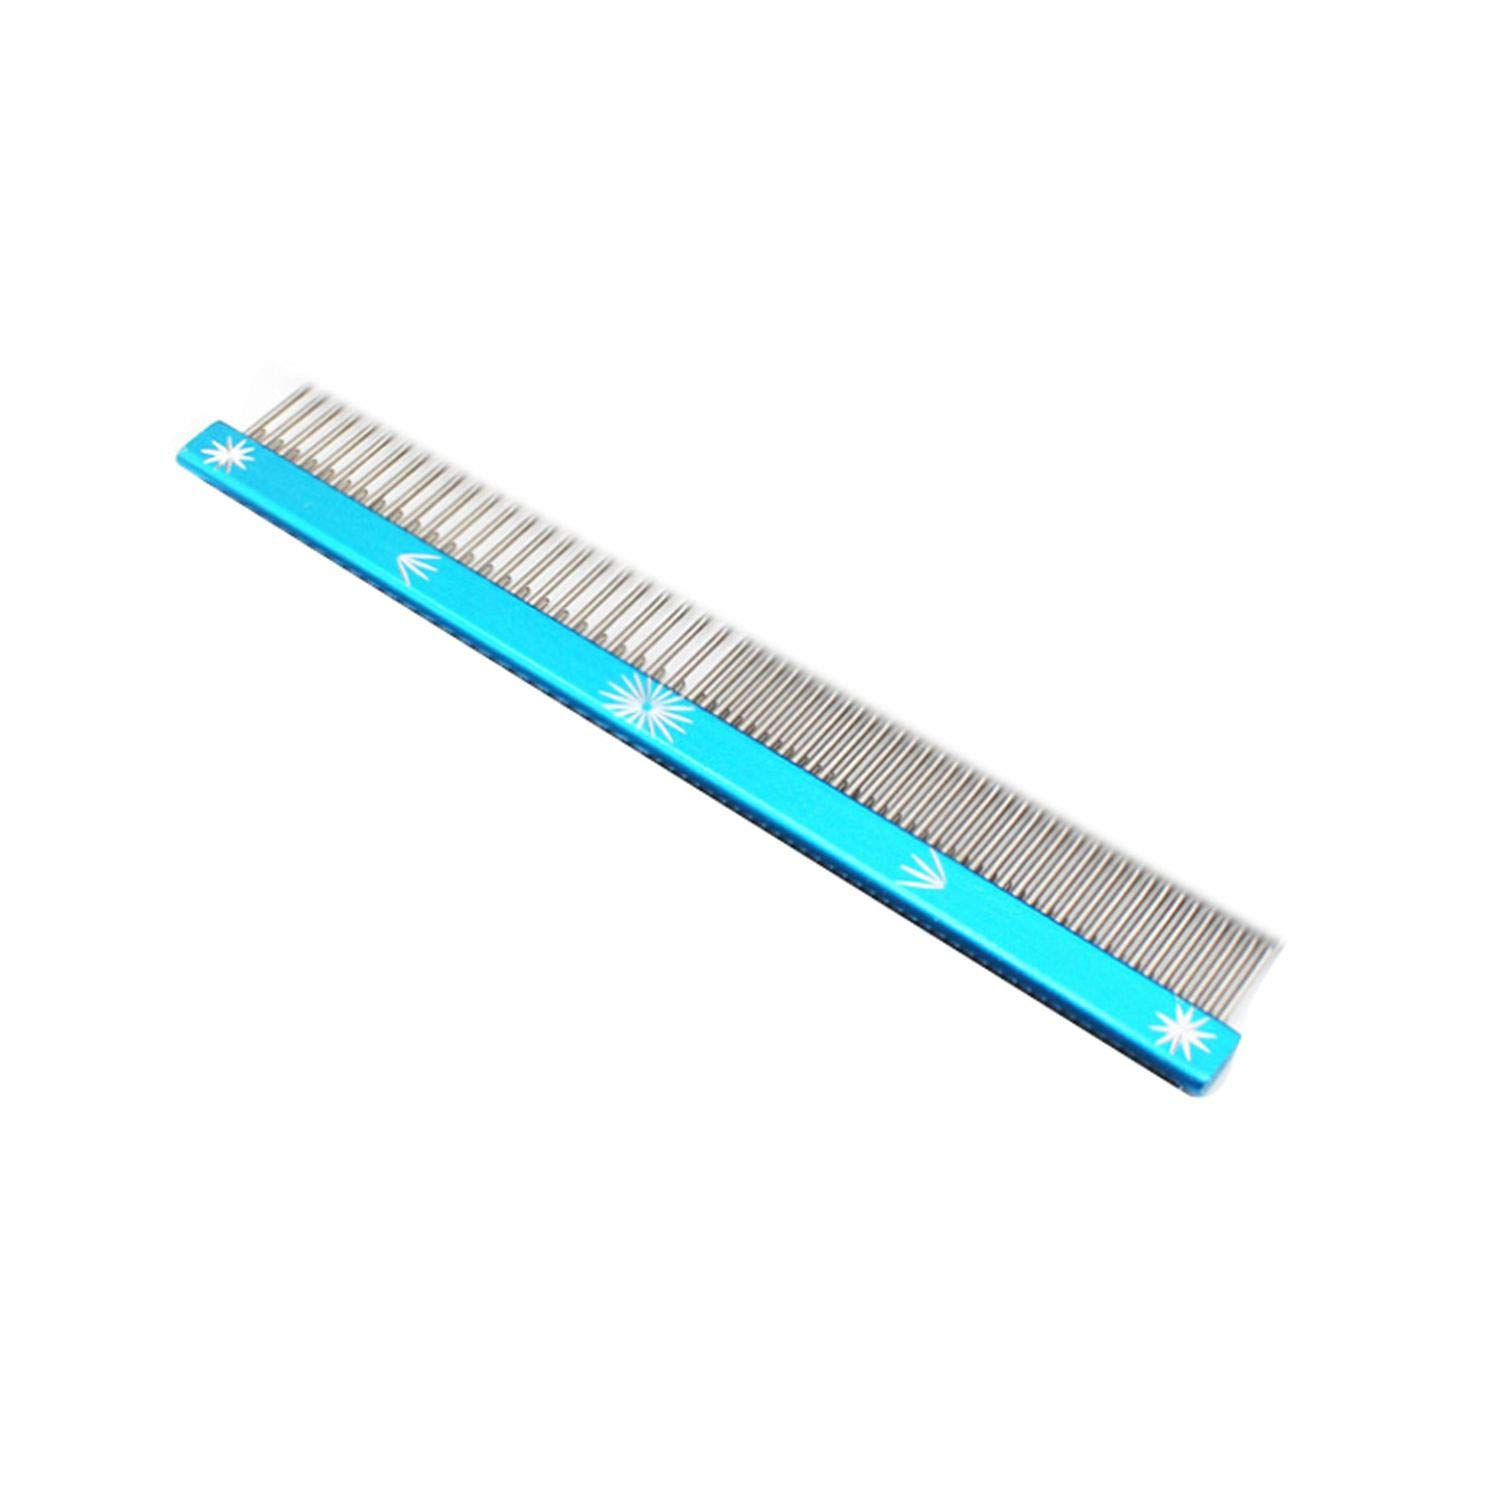 Go get it now Pet Dog Comb Dense Stainless Steel Grooming Comb for Dogs Salon,Blue,M